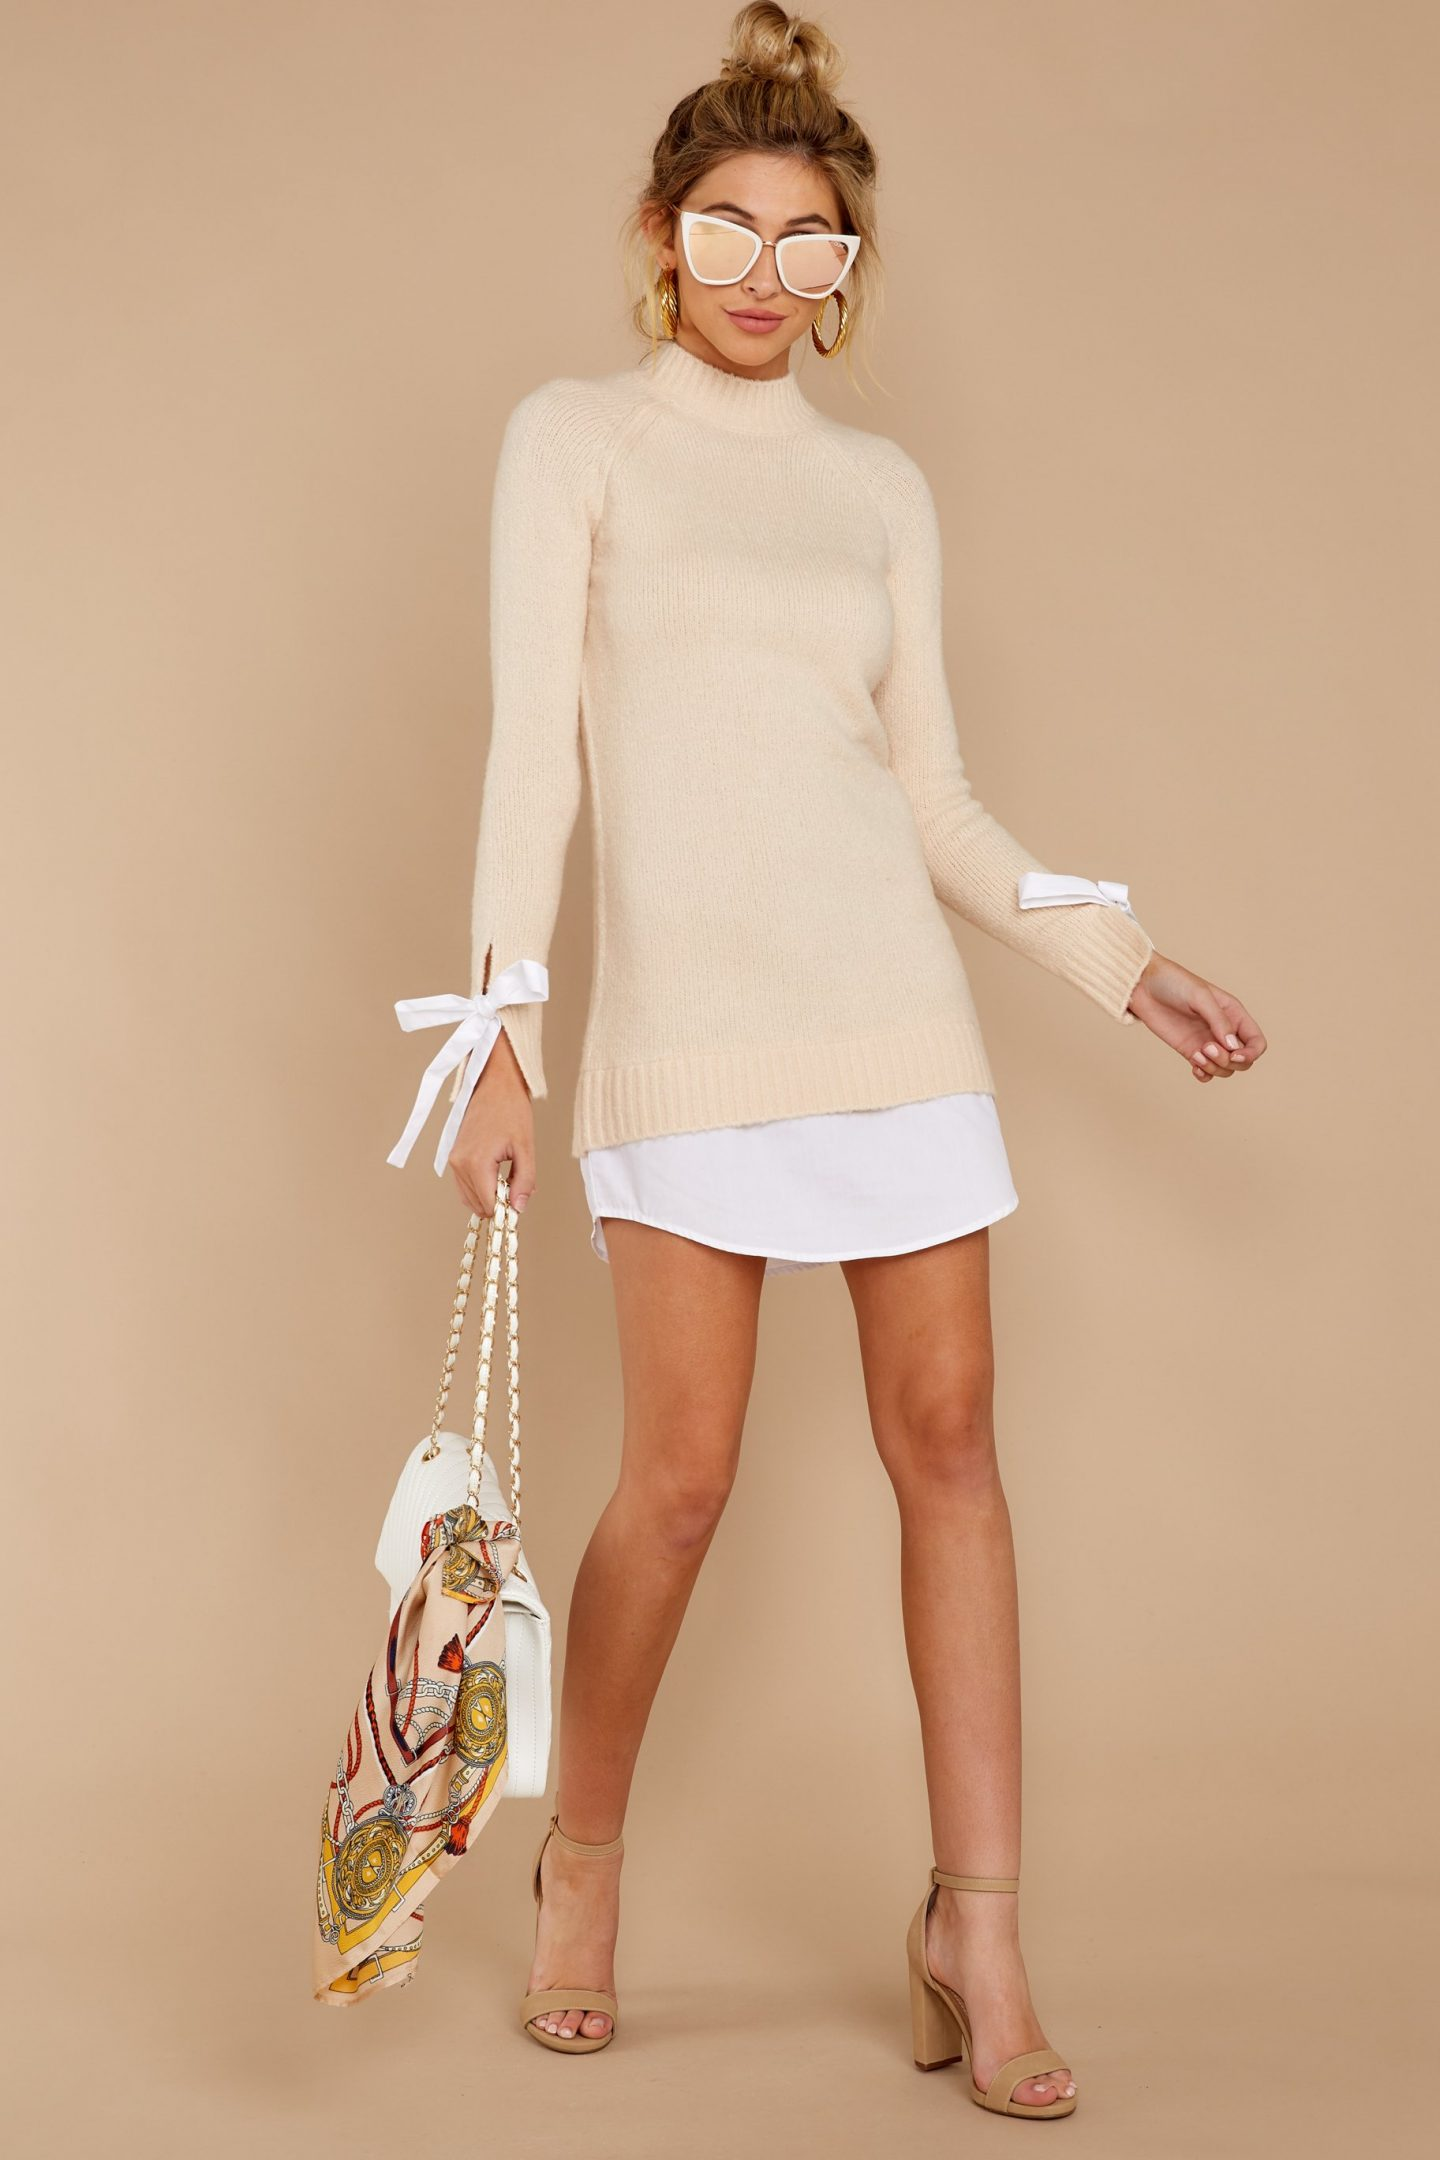 Cute spring outfit ideas with beige sweater dress